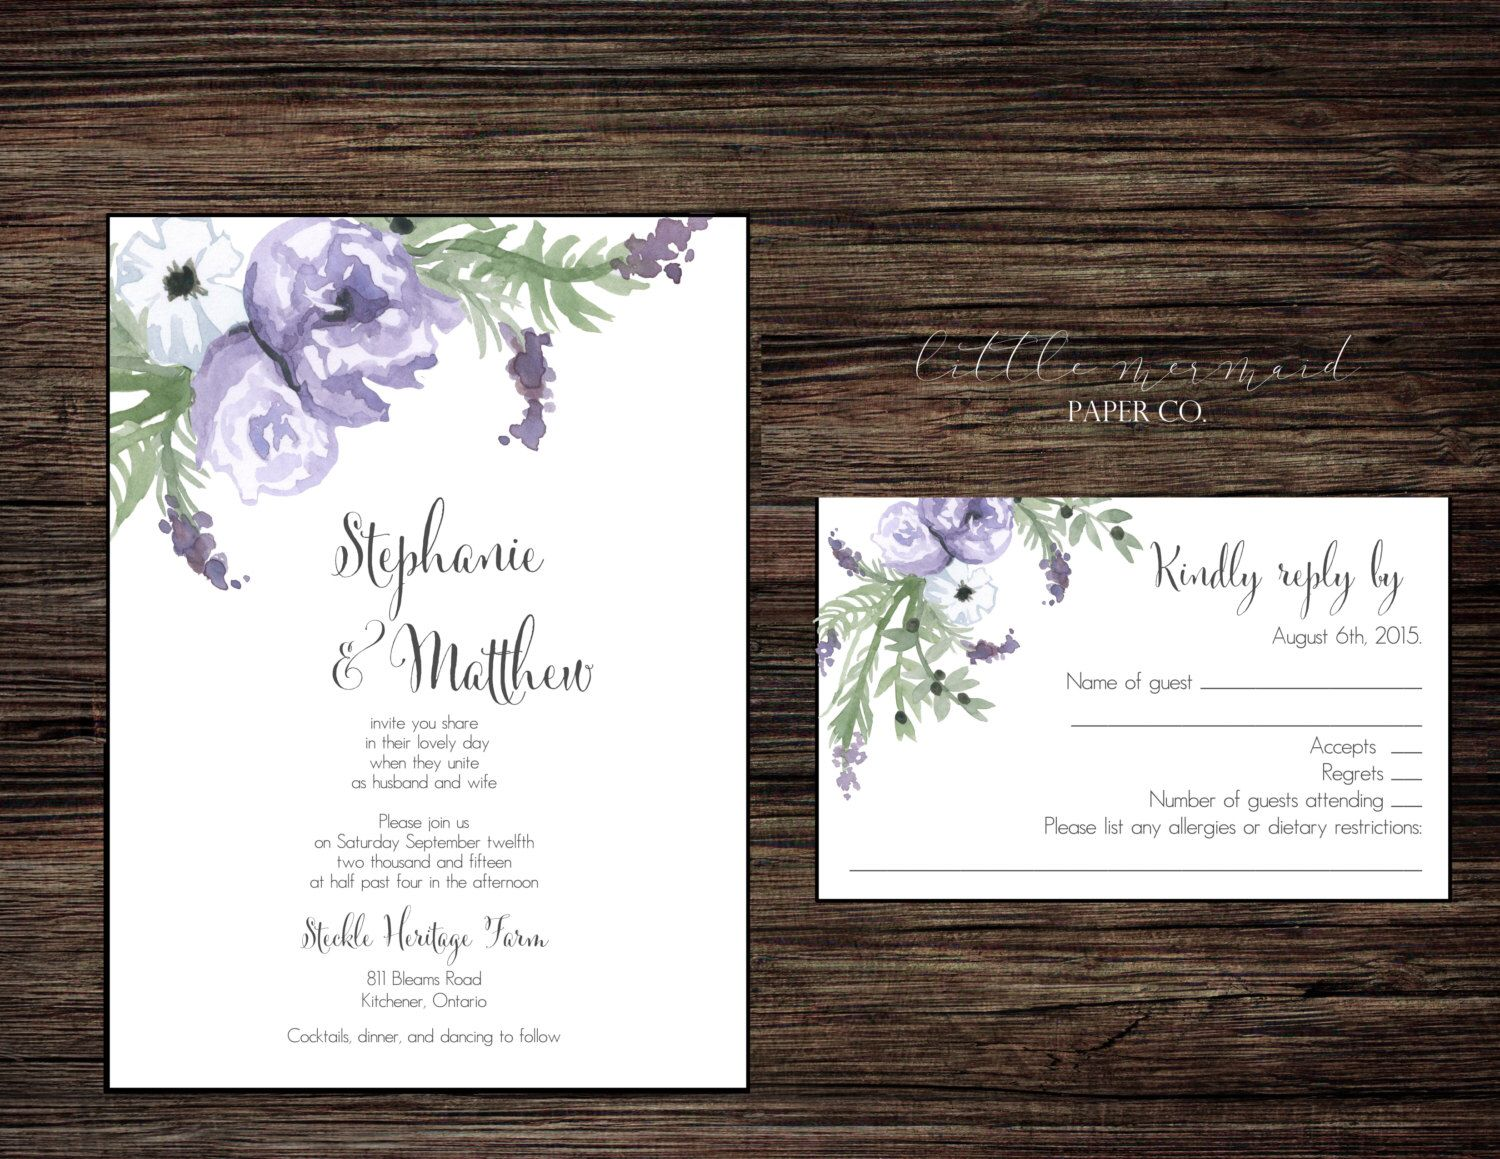 wildflower wedding invitation templates%0A PRINTABLE Modern Rustic purple watercolour floral DIY wedding invitation   Purple watercolour floral printable wedding invitation